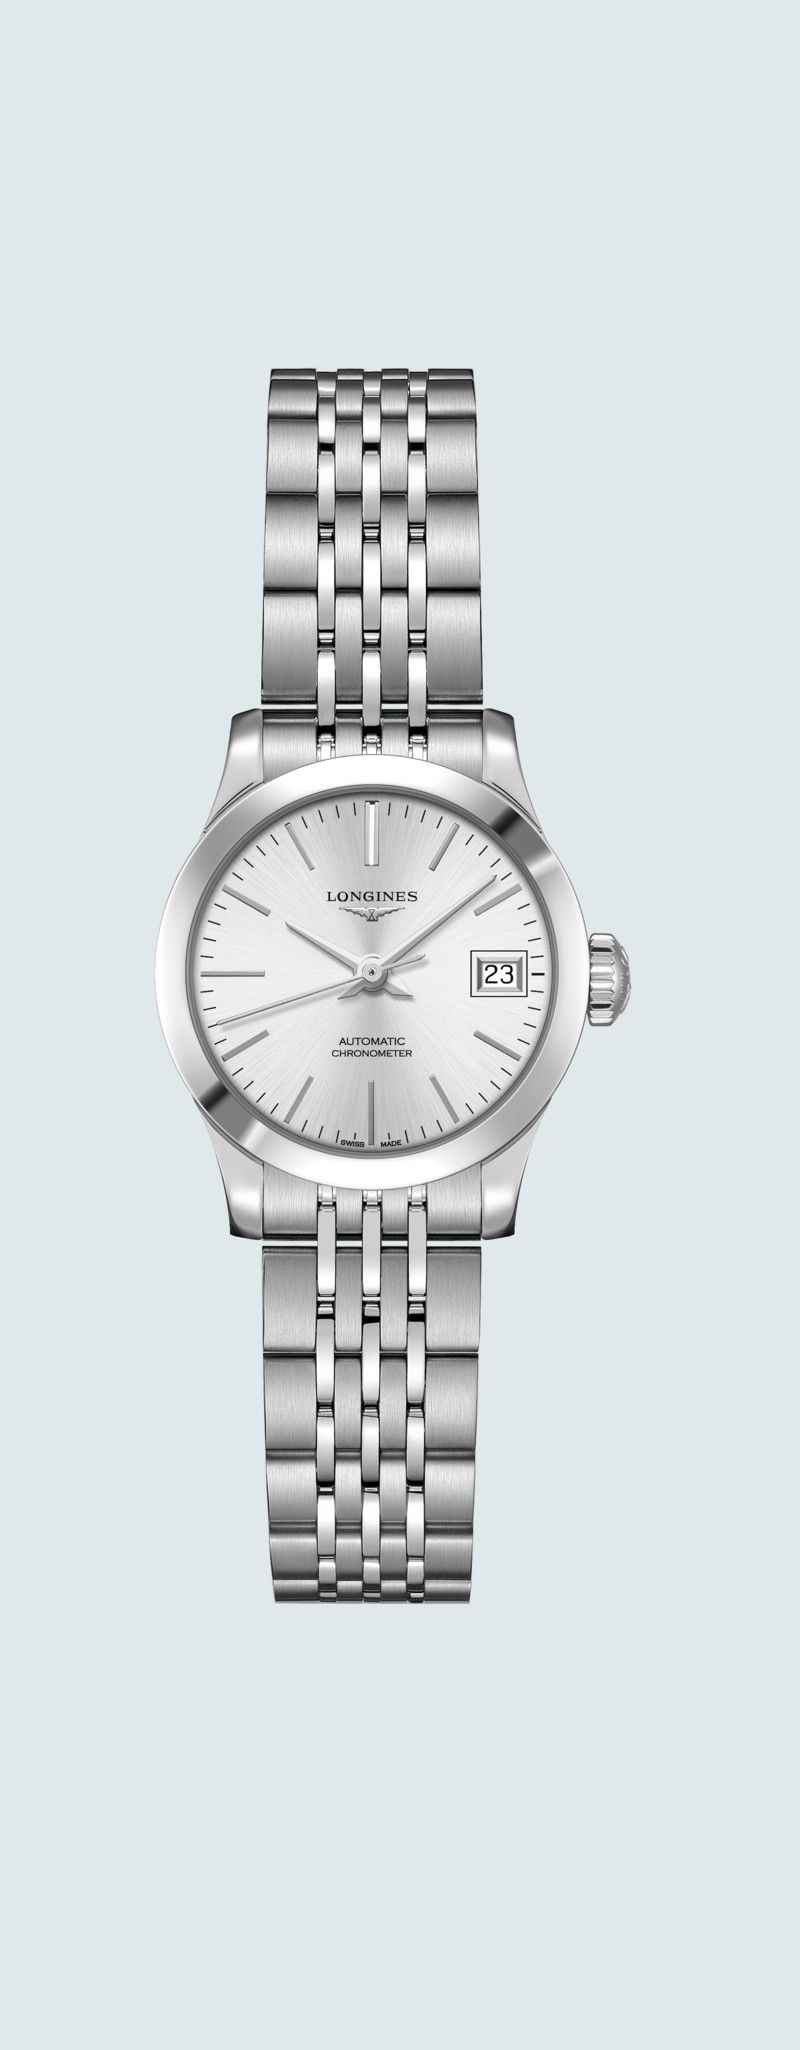 26.00 mm Acciaio inossidabile case with Argento a raggi di sole dial and Acciaio inossidabile strap